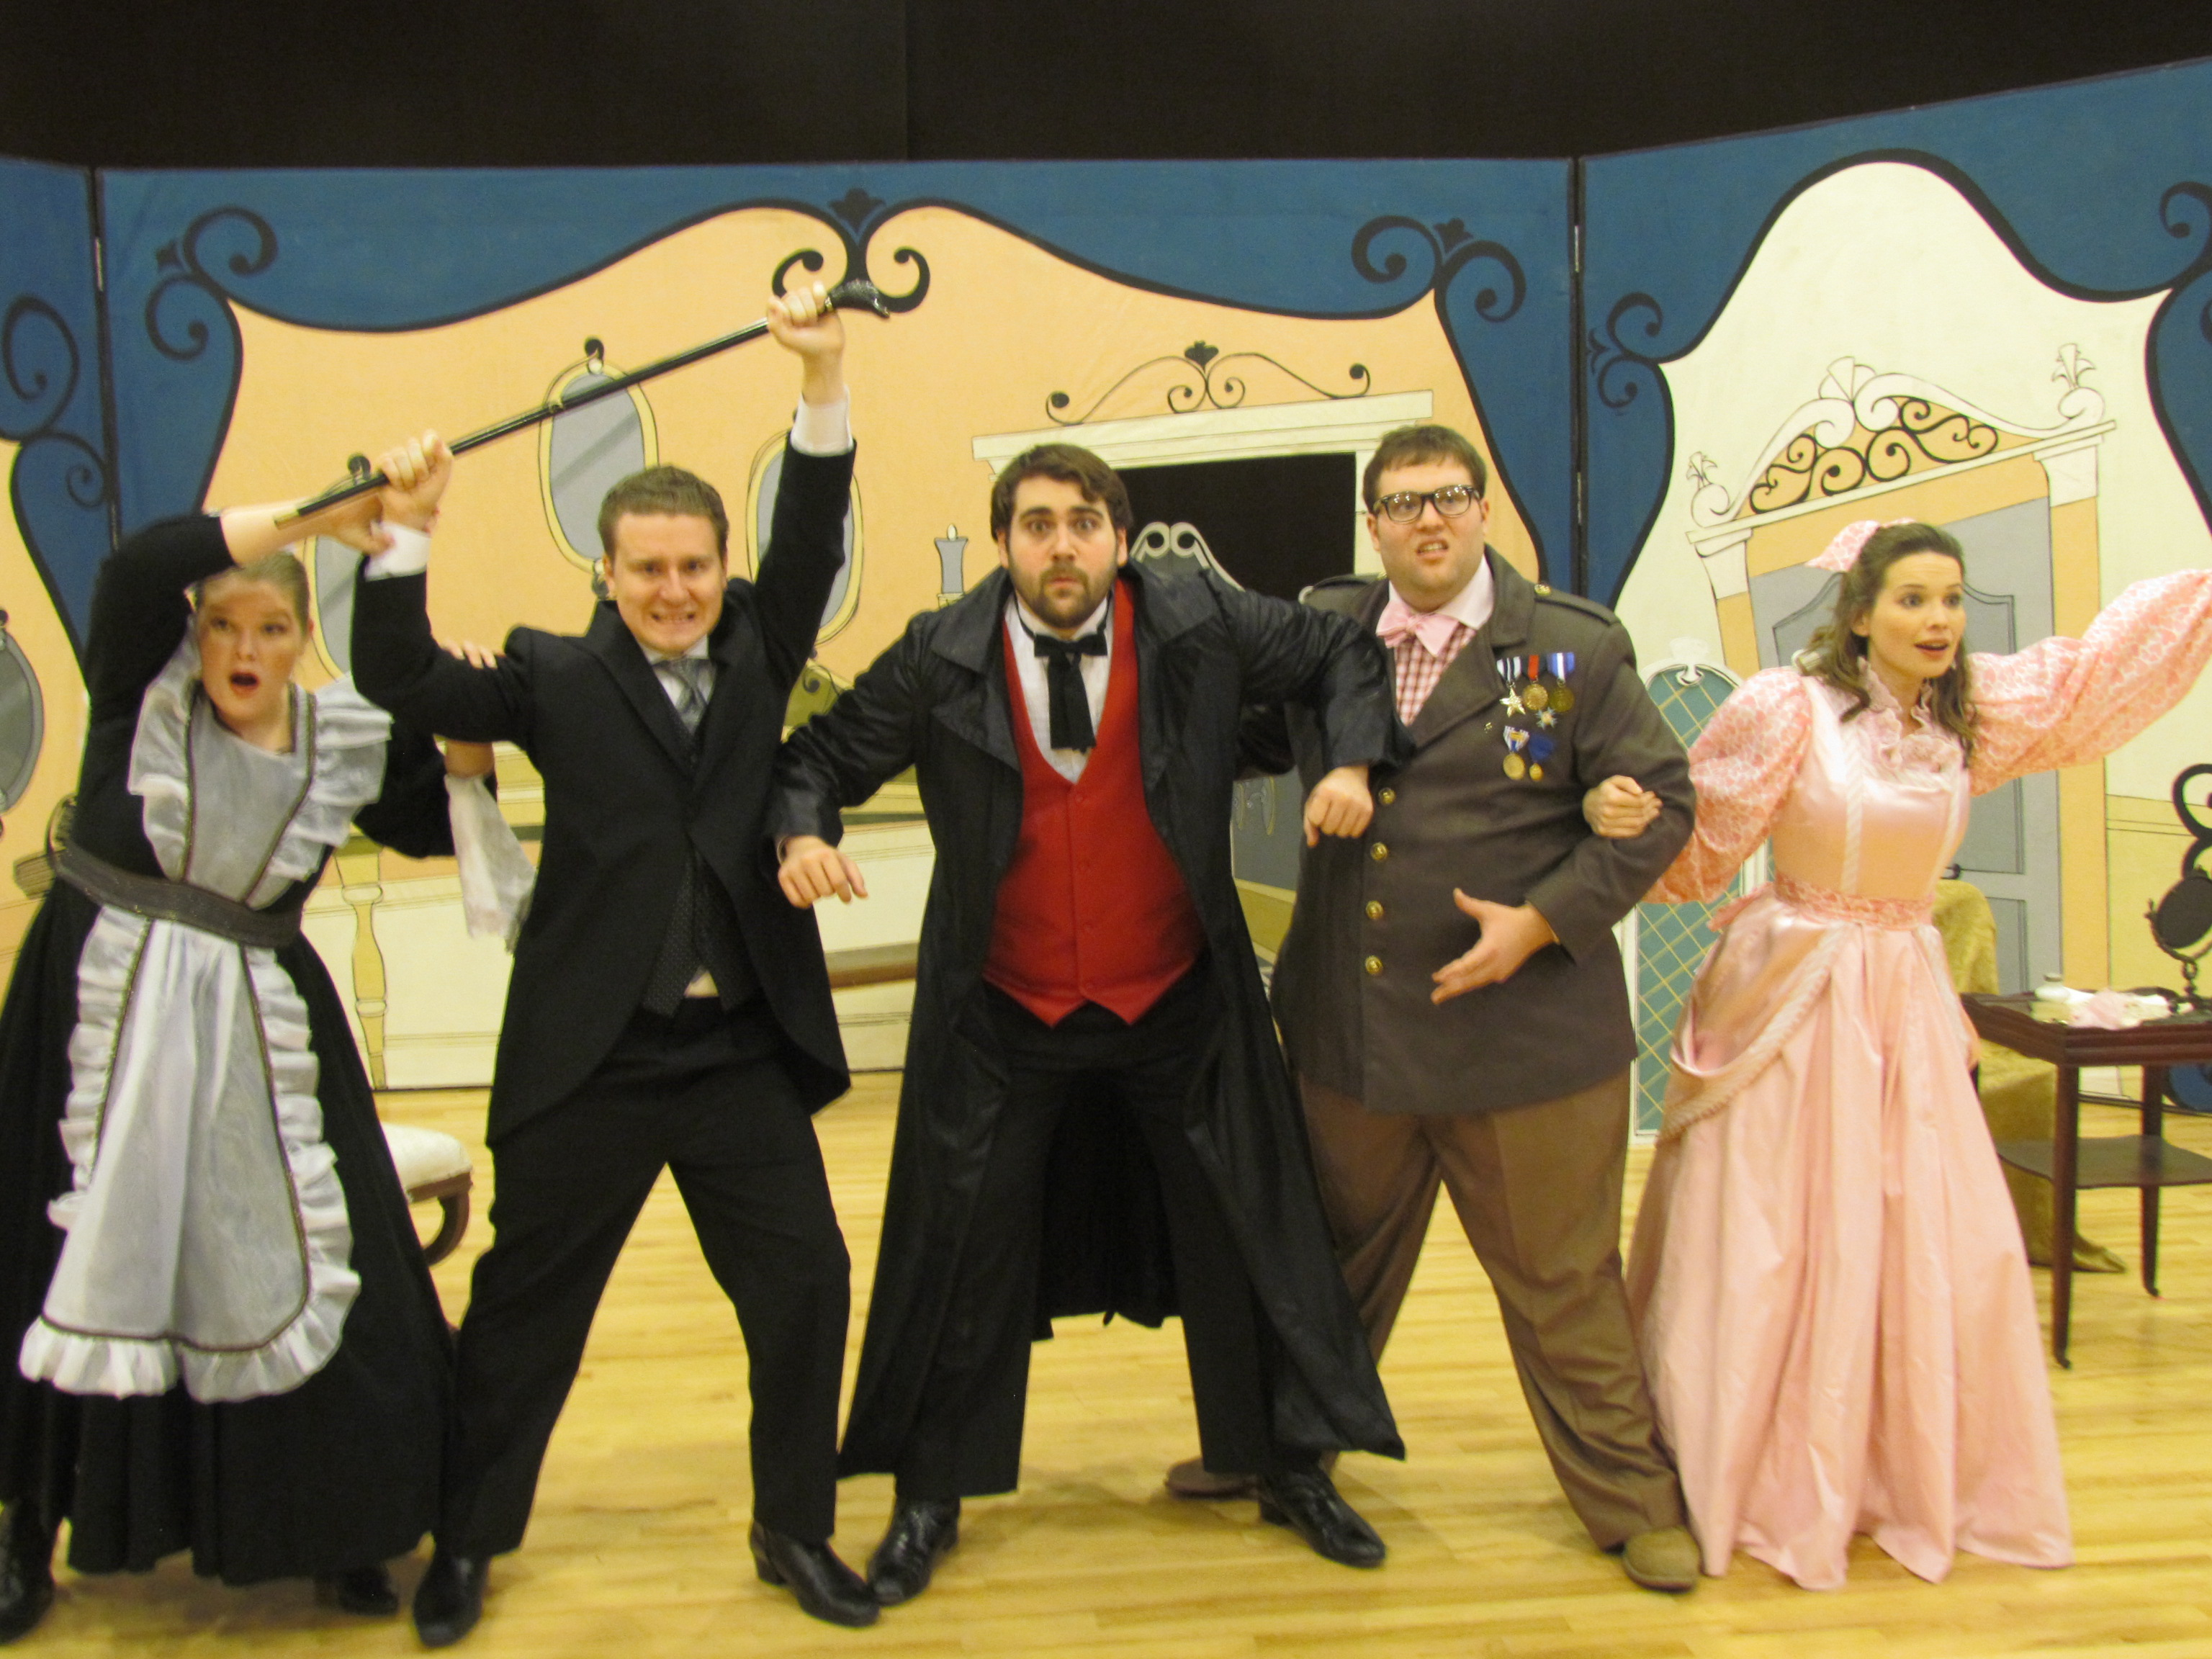 <p>Opera Colorado's Young Artists (from left to right): Colleen Jackson, Ben Sieverding, Jared Guest, Brett Sprague and Louise Rogan.</p>